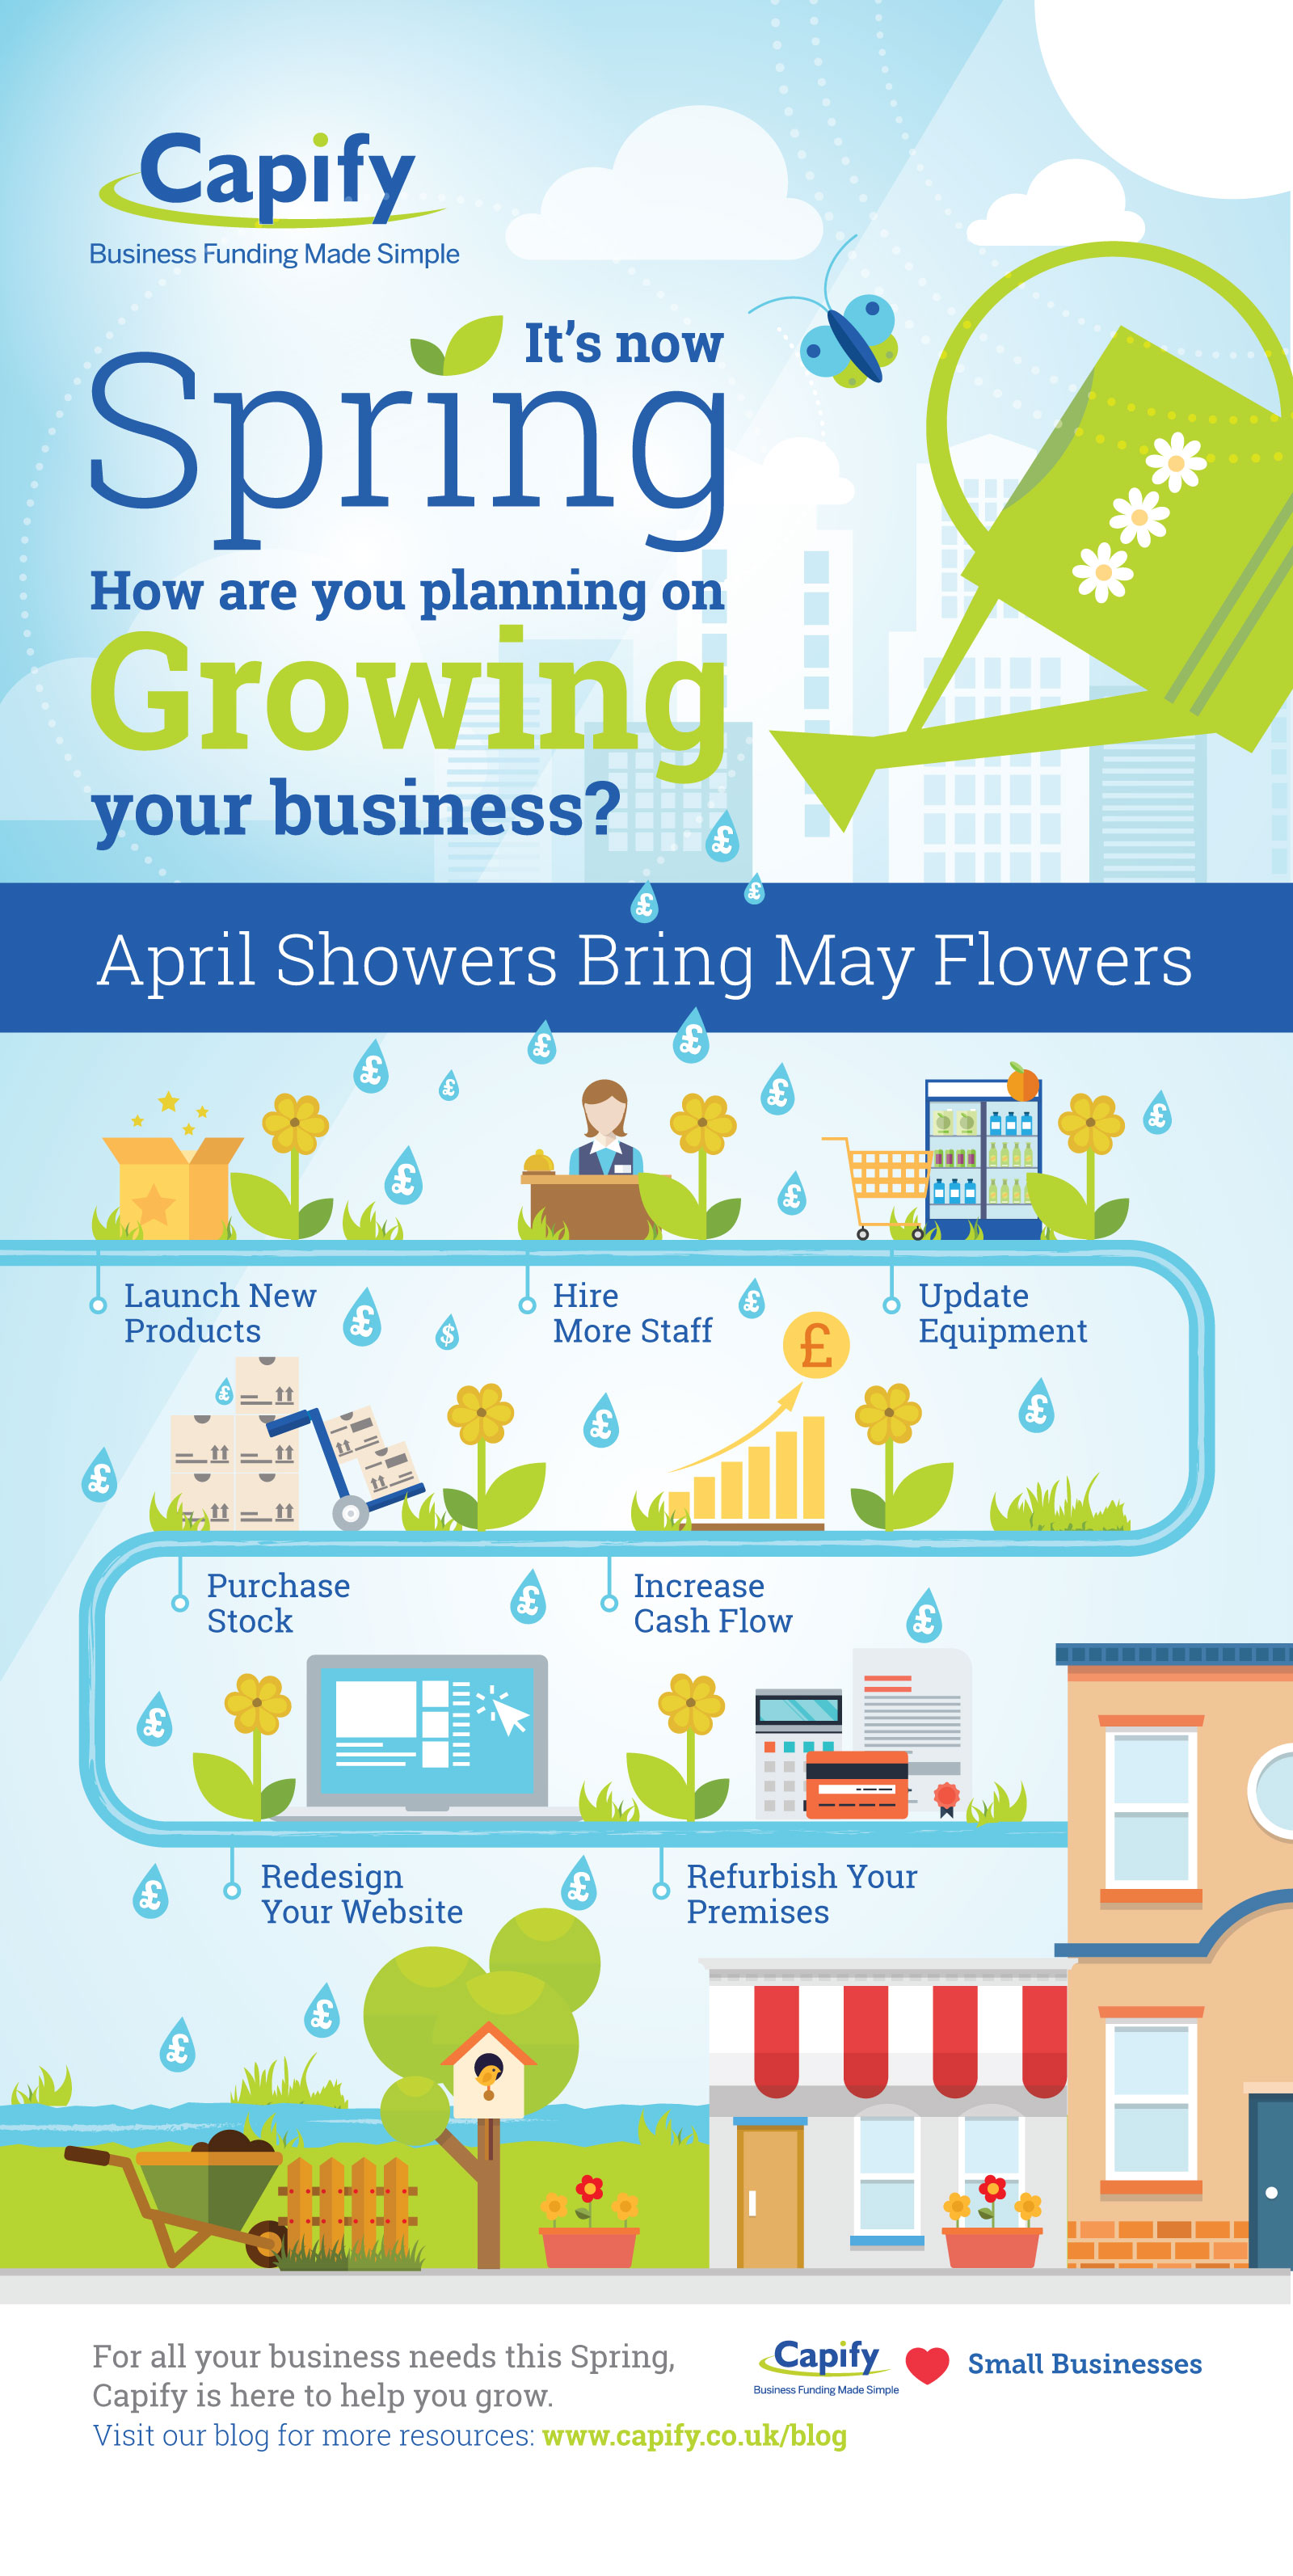 7 Ways to grow your business this Spring